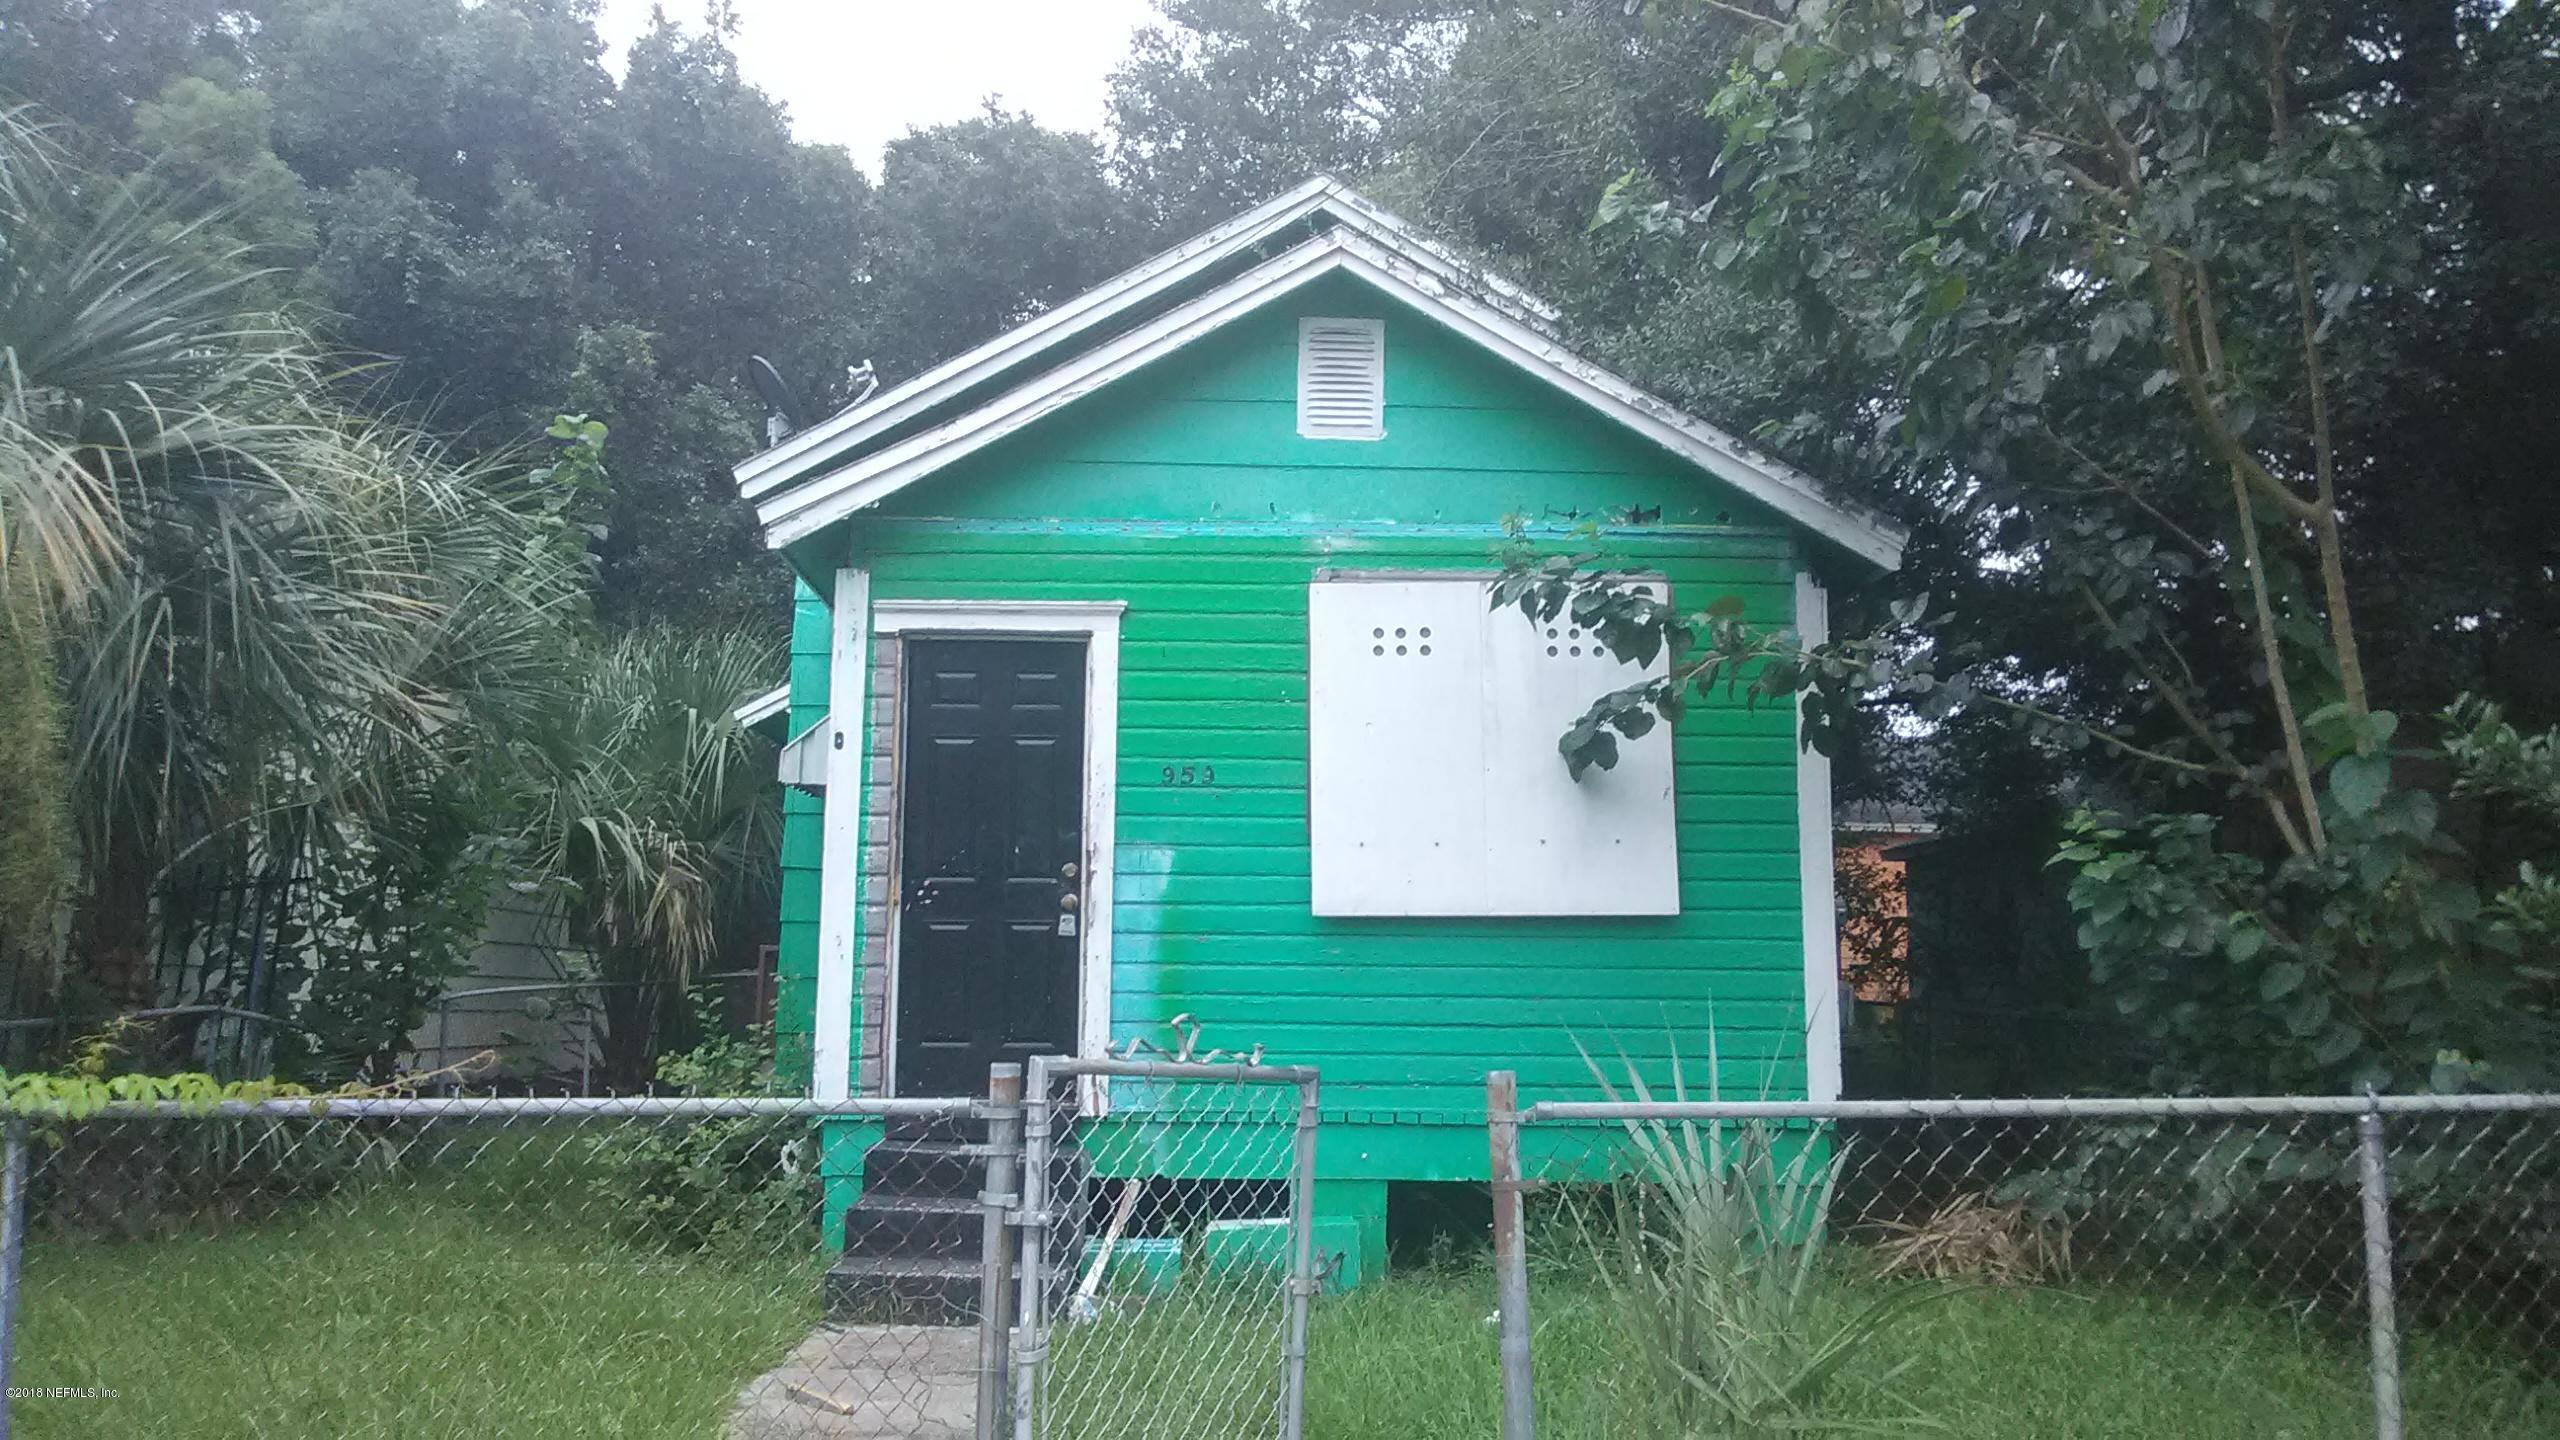 959 WASHINGTON, JACKSONVILLE, FLORIDA 32206, 2 Bedrooms Bedrooms, ,1 BathroomBathrooms,Commercial,For sale,WASHINGTON,955087